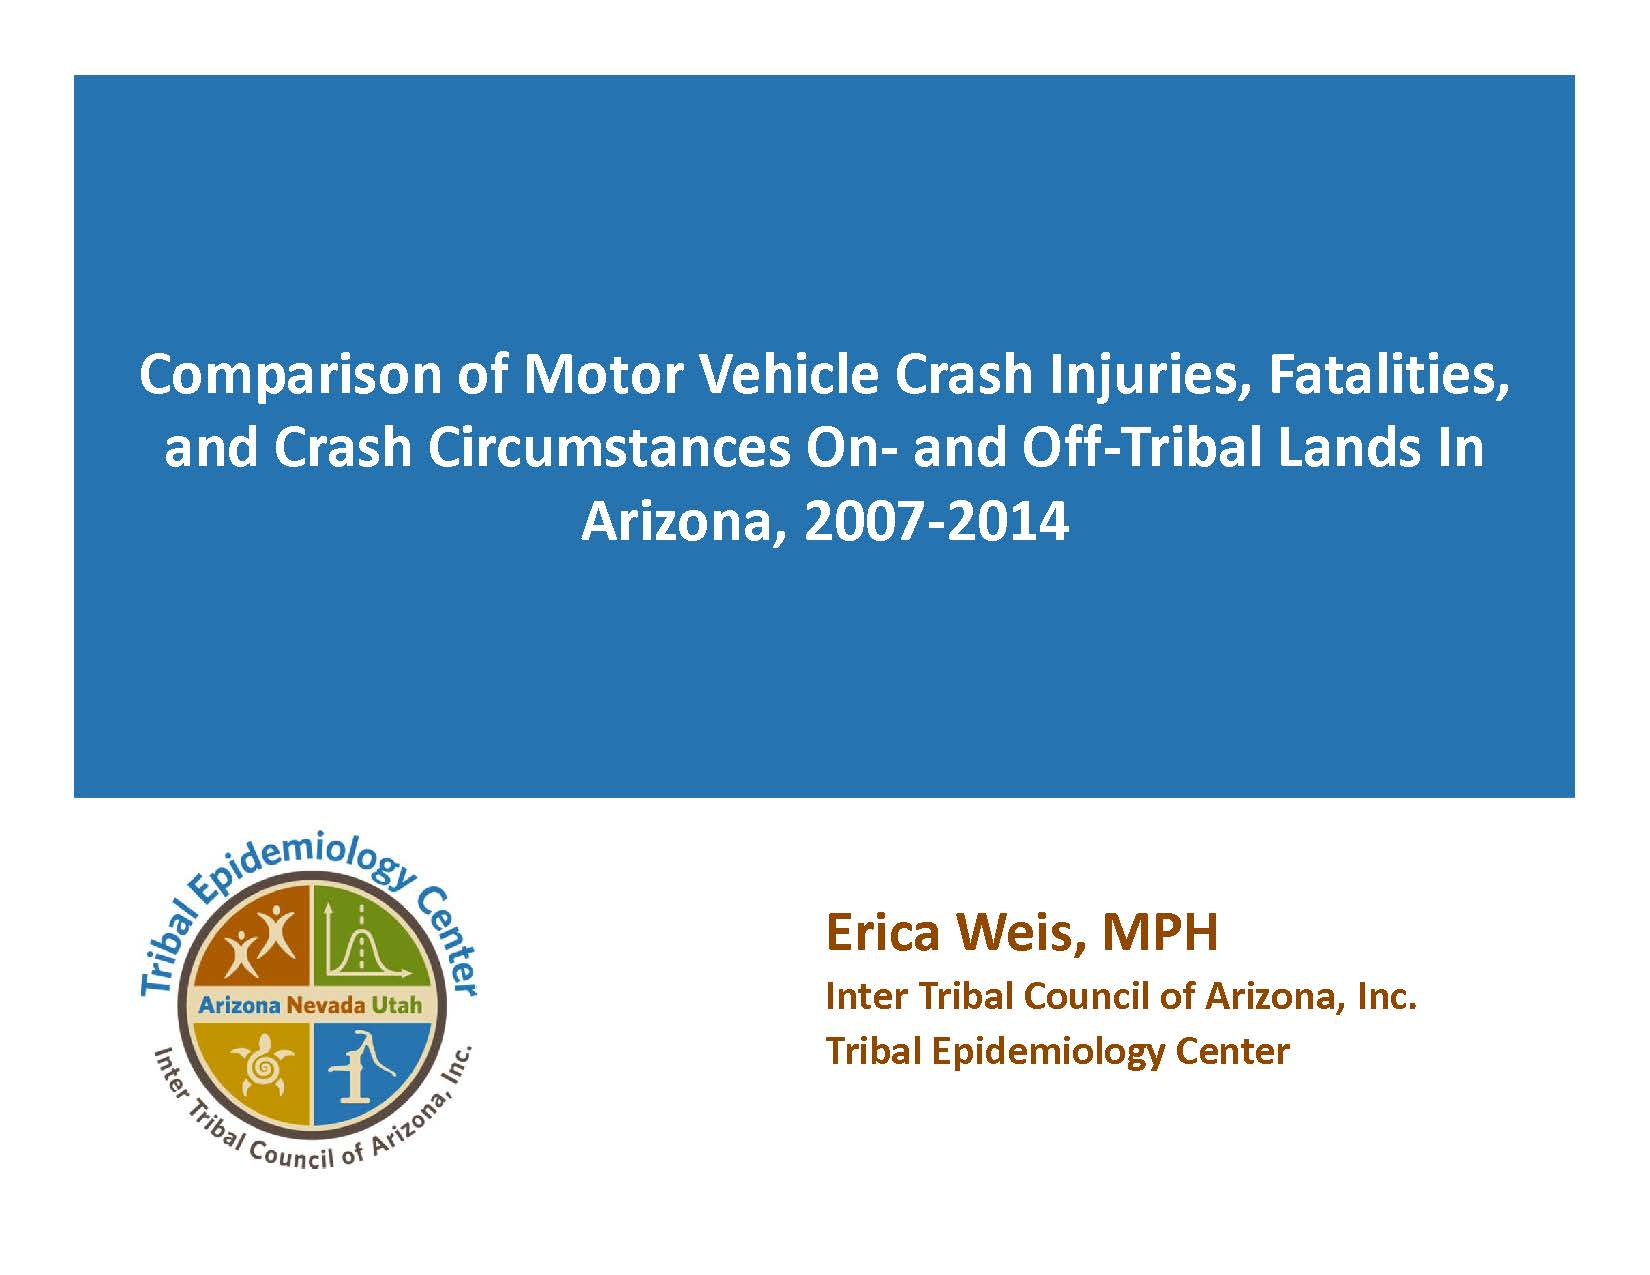 Comparison of Motor Vehicle Crash Injuries, Fatalities, and Crash Circumstances On- and Off-Tribal Lands In Arizona, 2007-2014